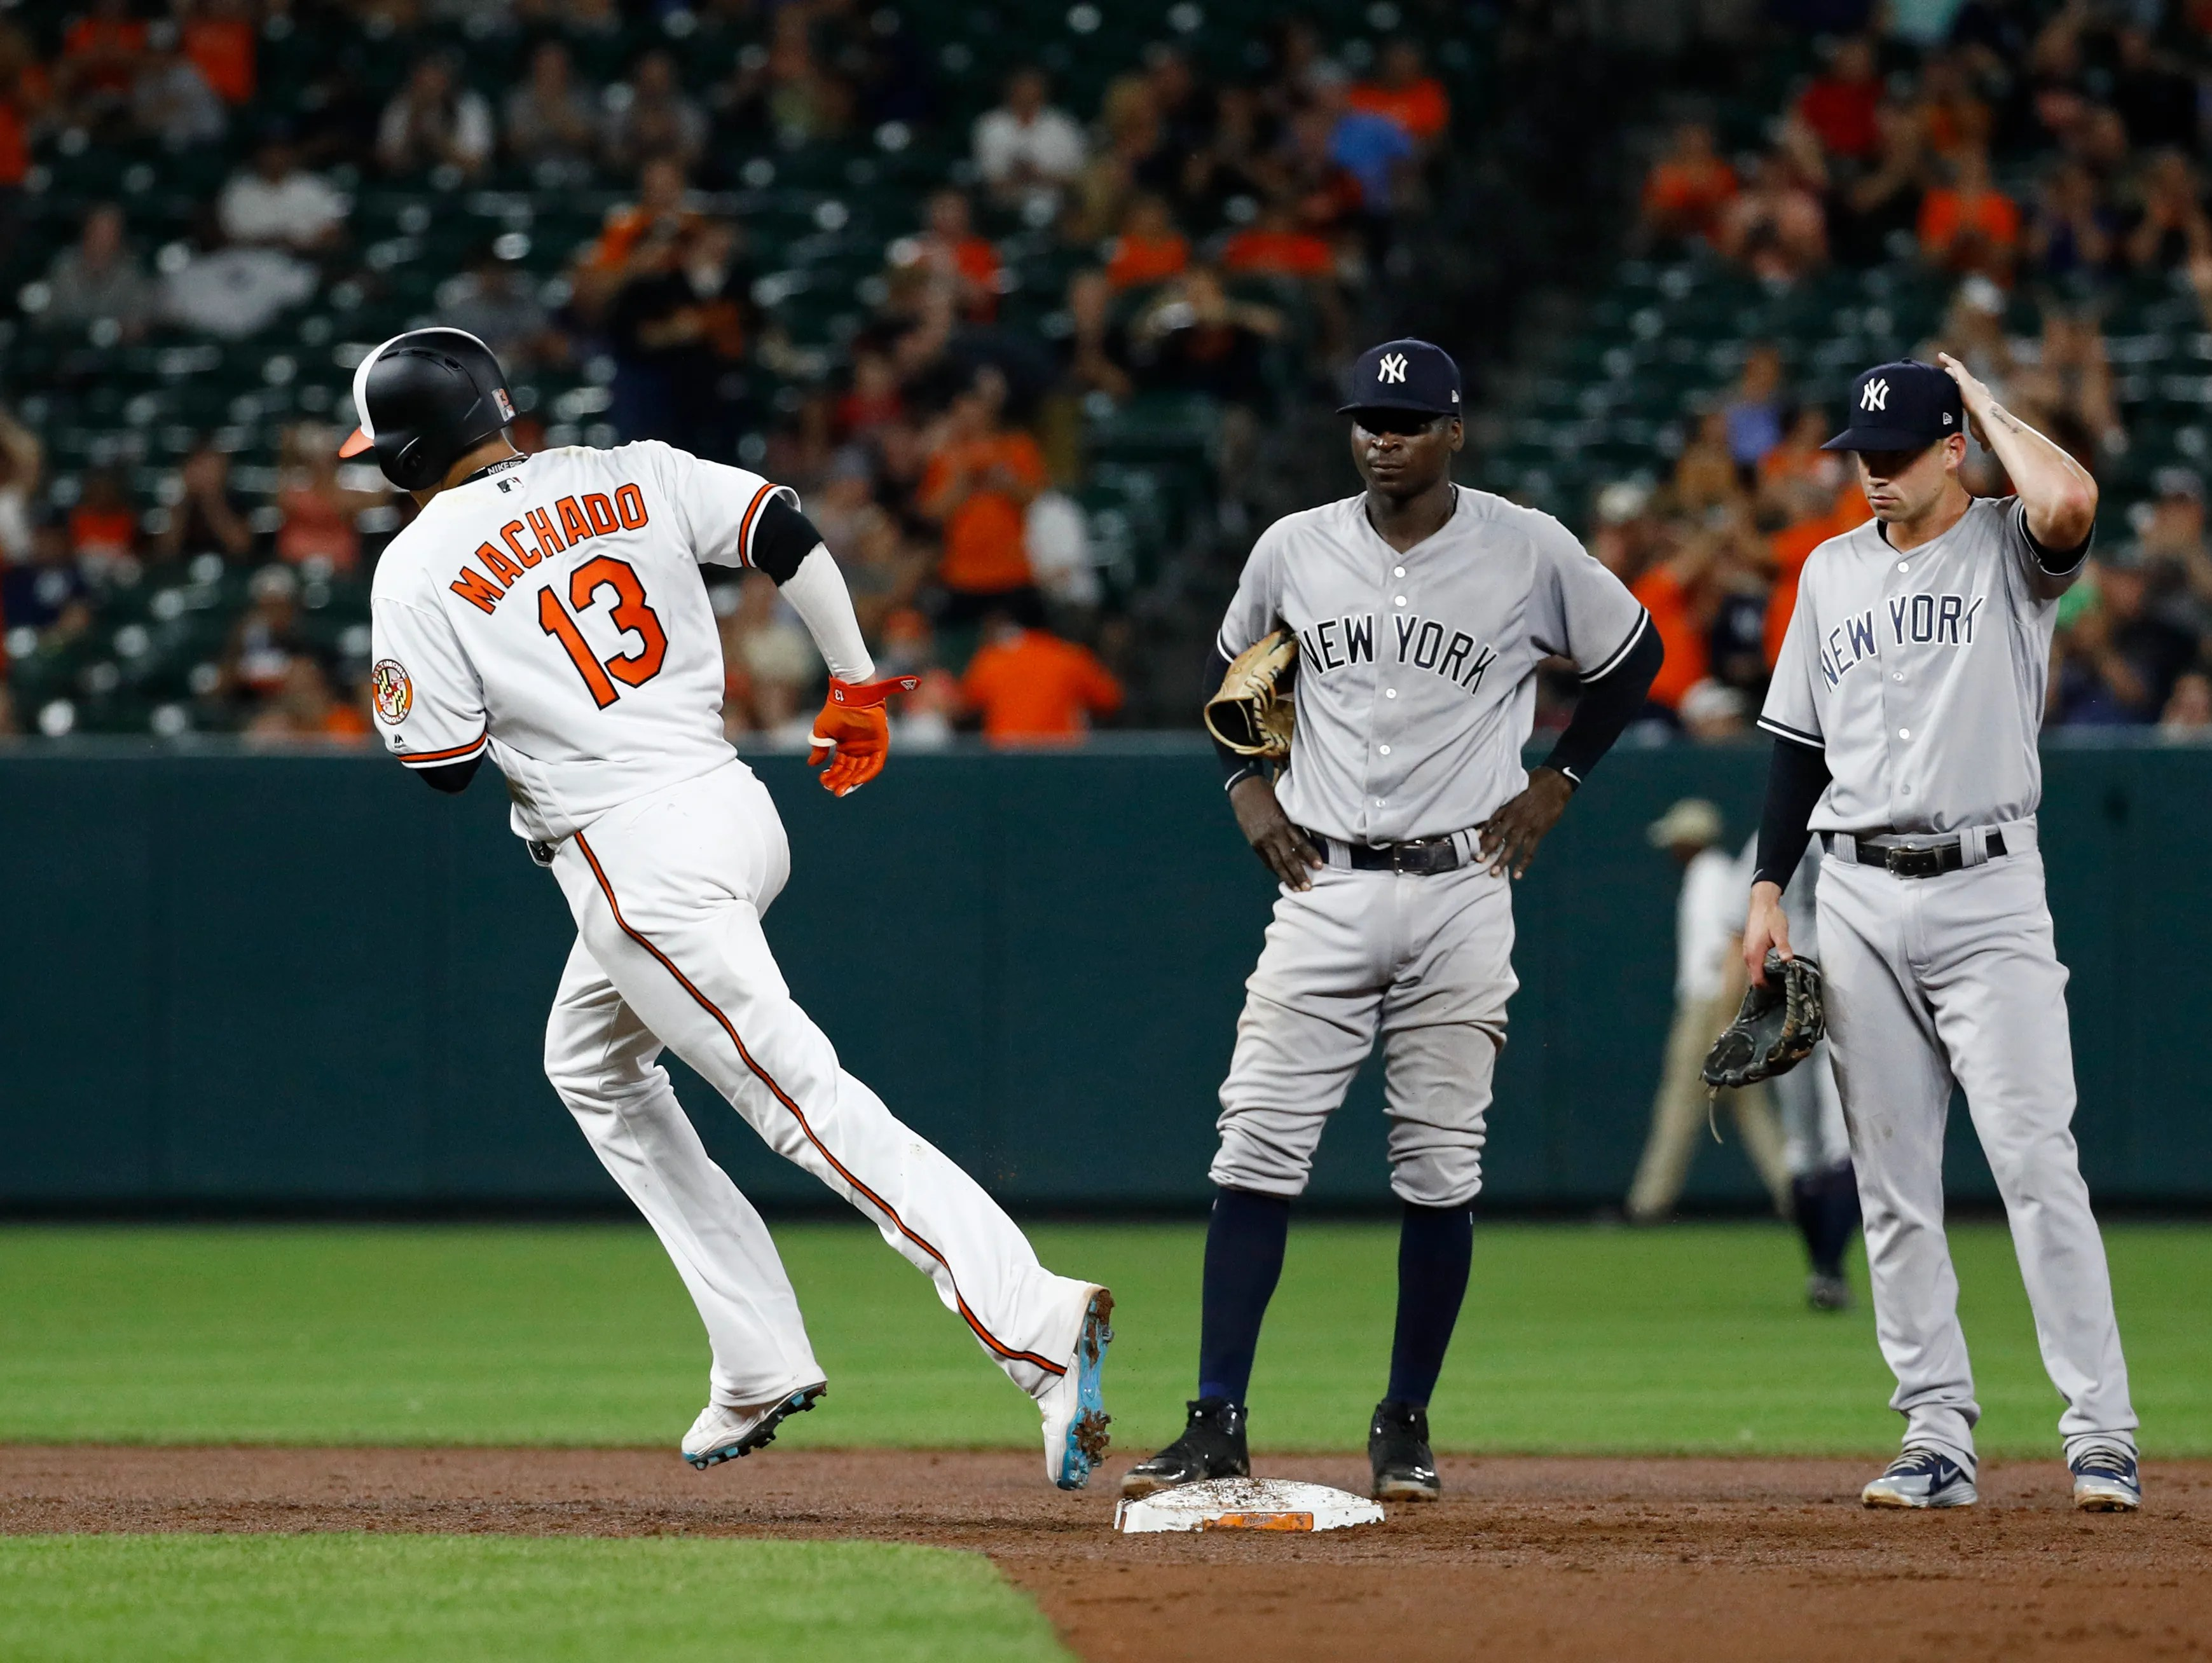 With Manny Machado Likely To La Dodgers What Do New York